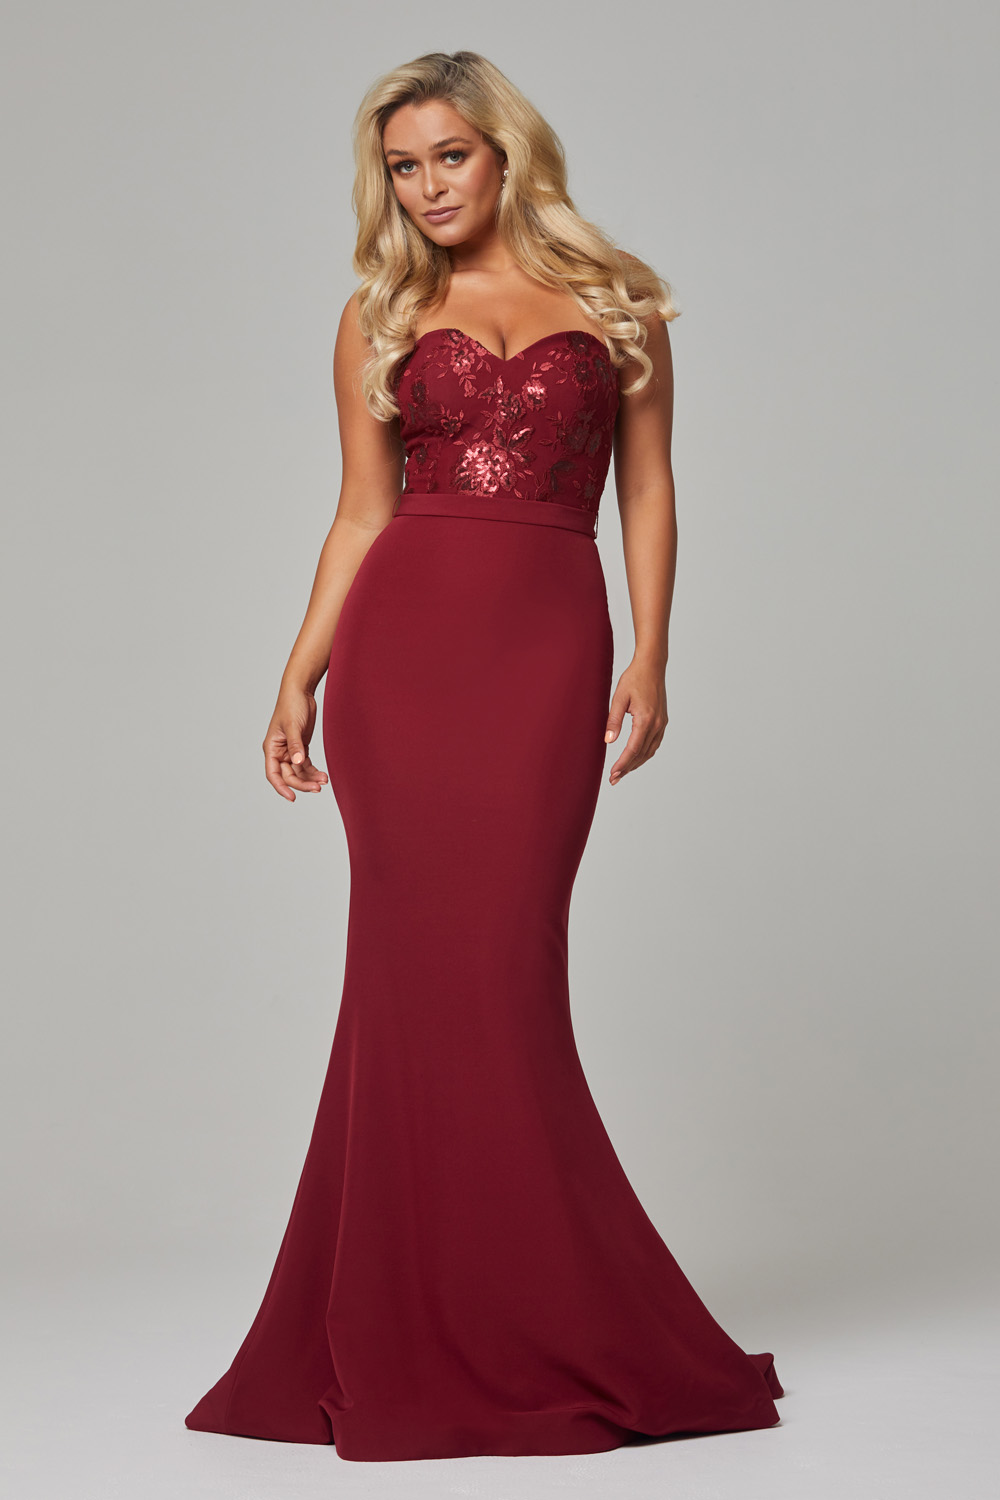 Paloma fitted strapless bridesmaid dress wine